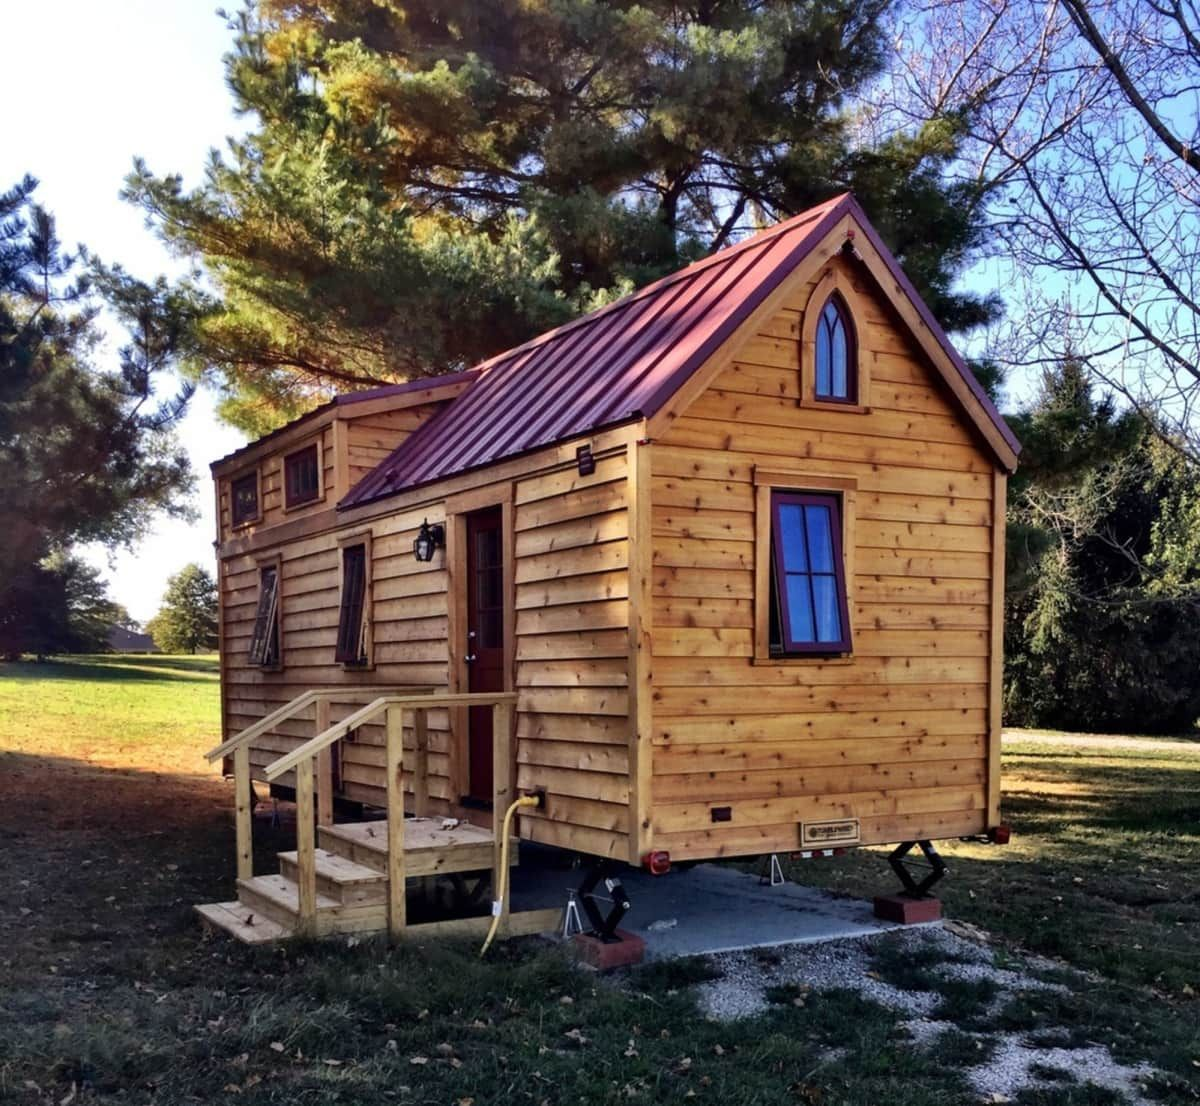 Tumbleweed Tiny House Shell Tiny House For Sale In Jeffersonville Indiana Tumbleweed Tiny Homes Tiny House Tiny Houses For Sale